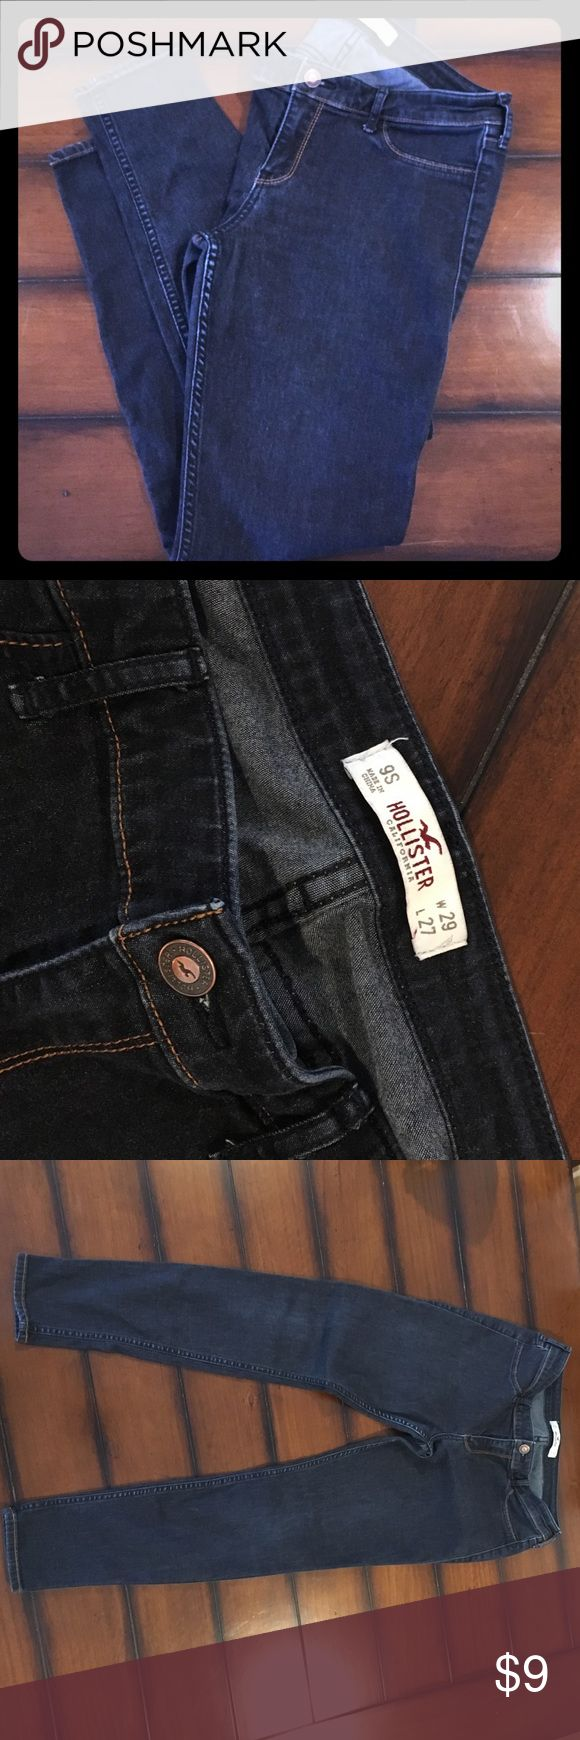 "Hollister Skinny Jeans Dark wash skinny stretchy jeans (jeggings), size 9S. 29"" waist & 27"" inseam. So cute cuffed with boots!! Worn postpartum several times but still in GUC! No rips, stains or tears. Hollister Jeans Skinny"